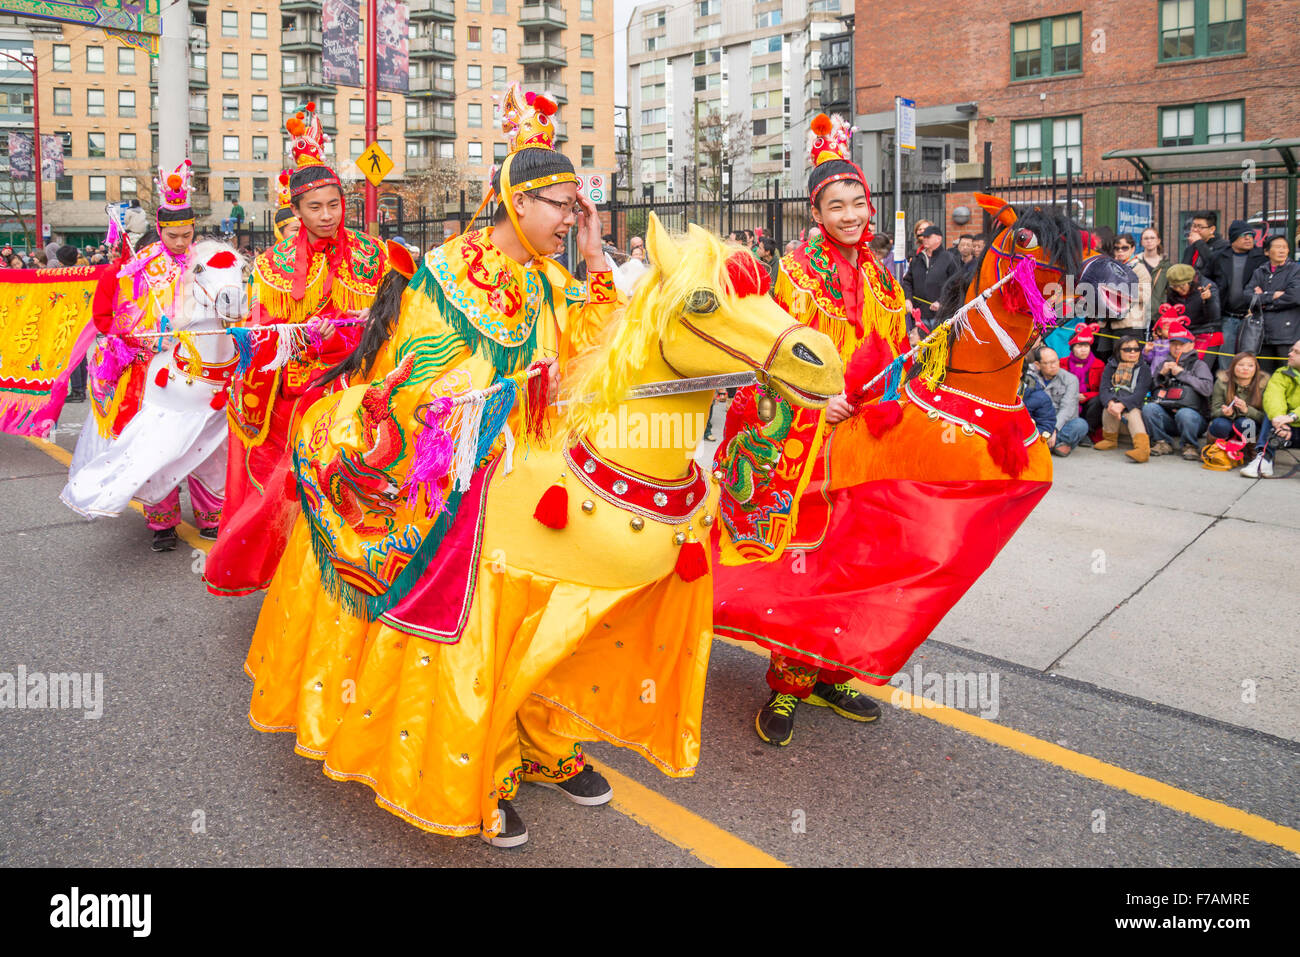 Chinese New Year Parade, Year of the Horse - Stock Image